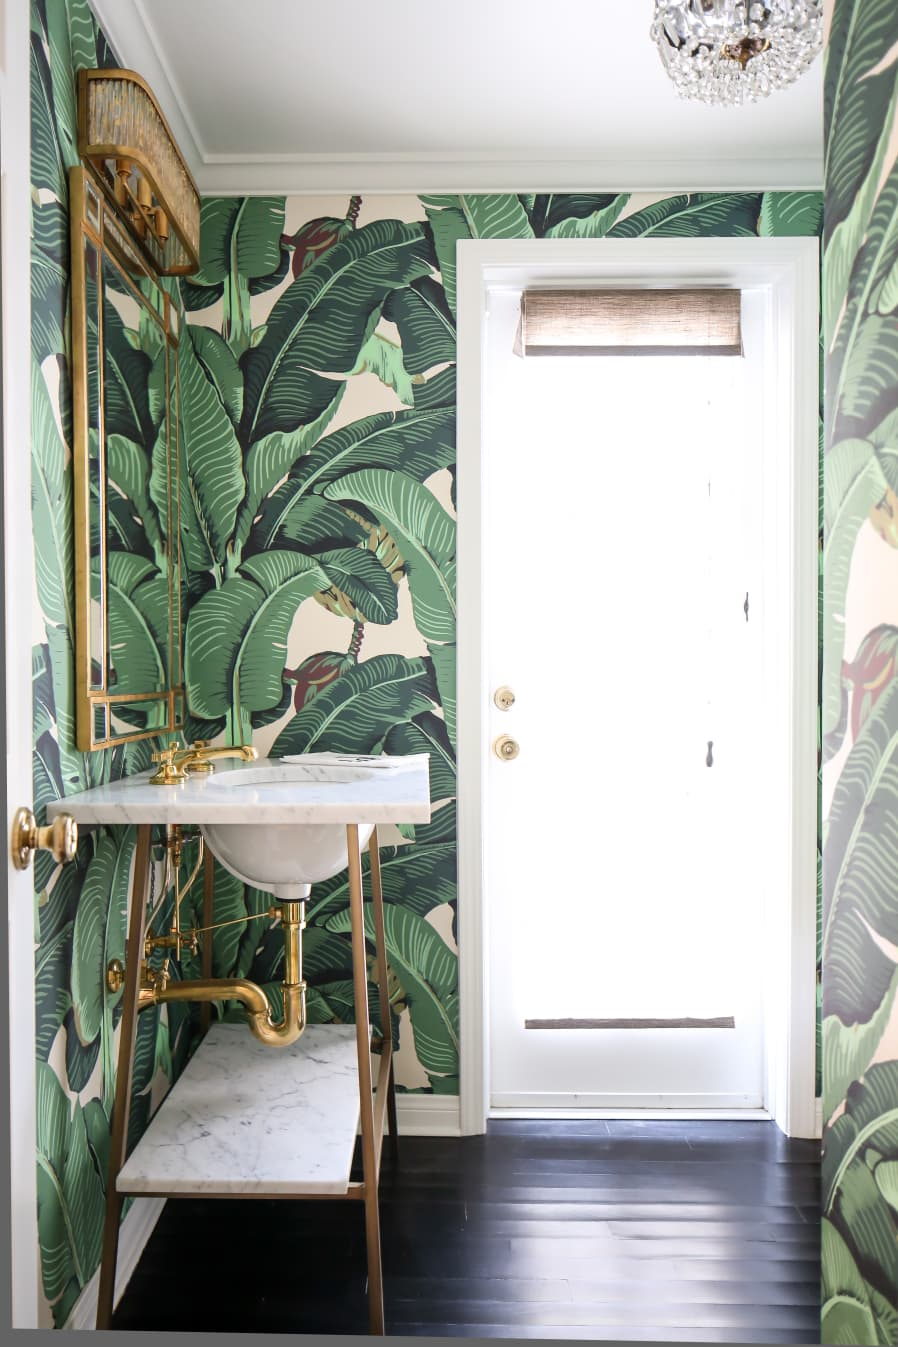 Beverly Hills Hotel Palm Print Wallpaper | Green Palm Print Wallpaper | California Cool Bathroom Inspiration | Colorful Wallpapered Bathroom | Gold and Green Bathroom